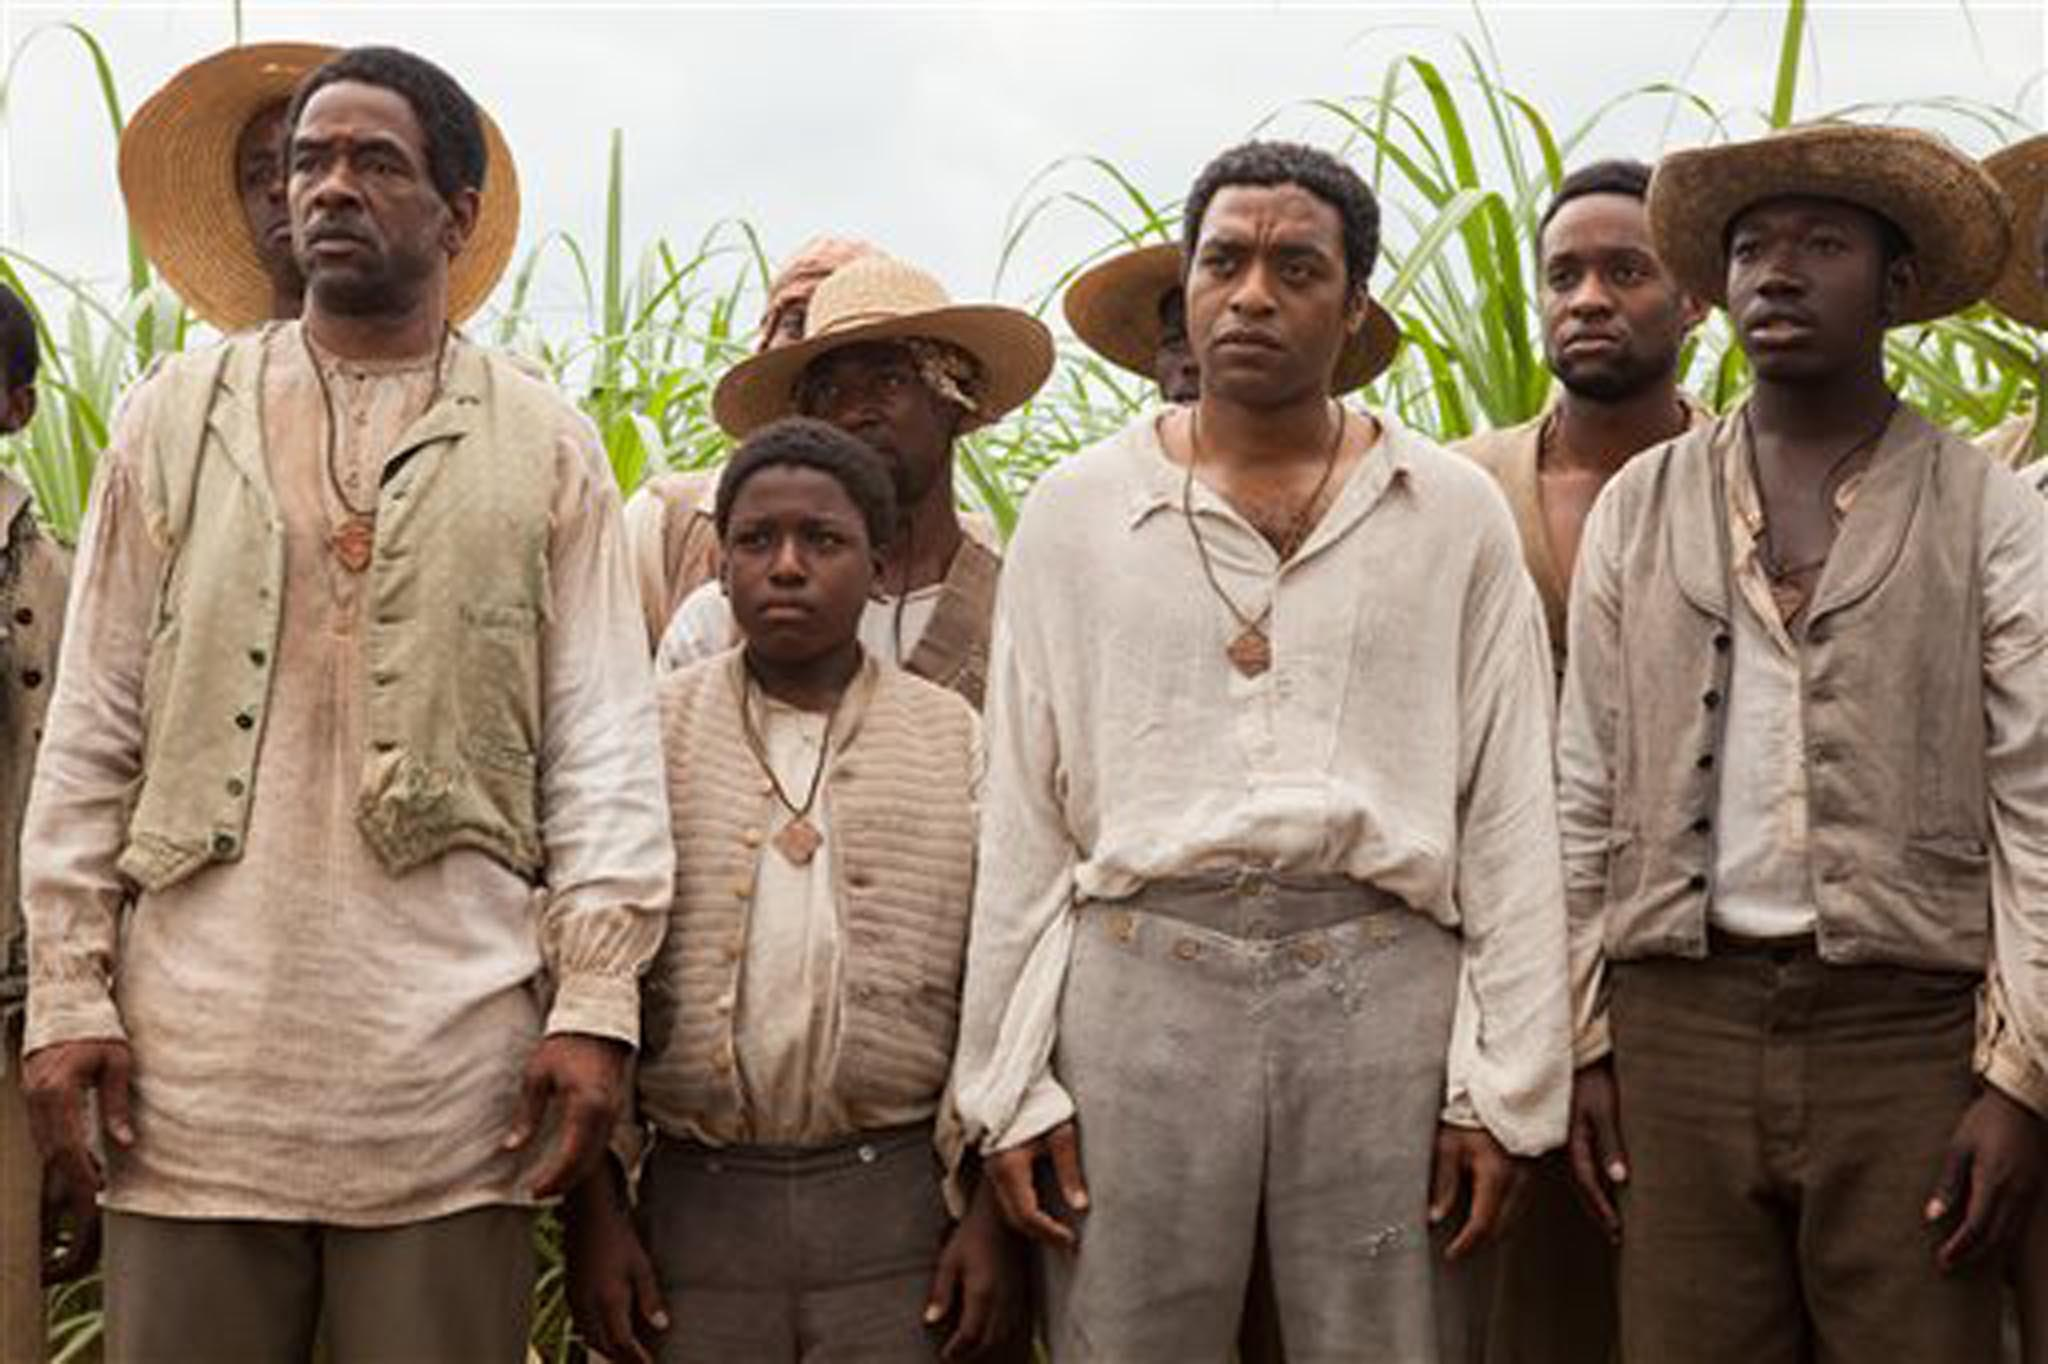 """This image released by Fox Searchlight shows Chiwetel Ejiofor, second right, in a scene from """"12 Years A Slave."""" (AP Photo/Fox Searchlight, Francois Duhamel)"""